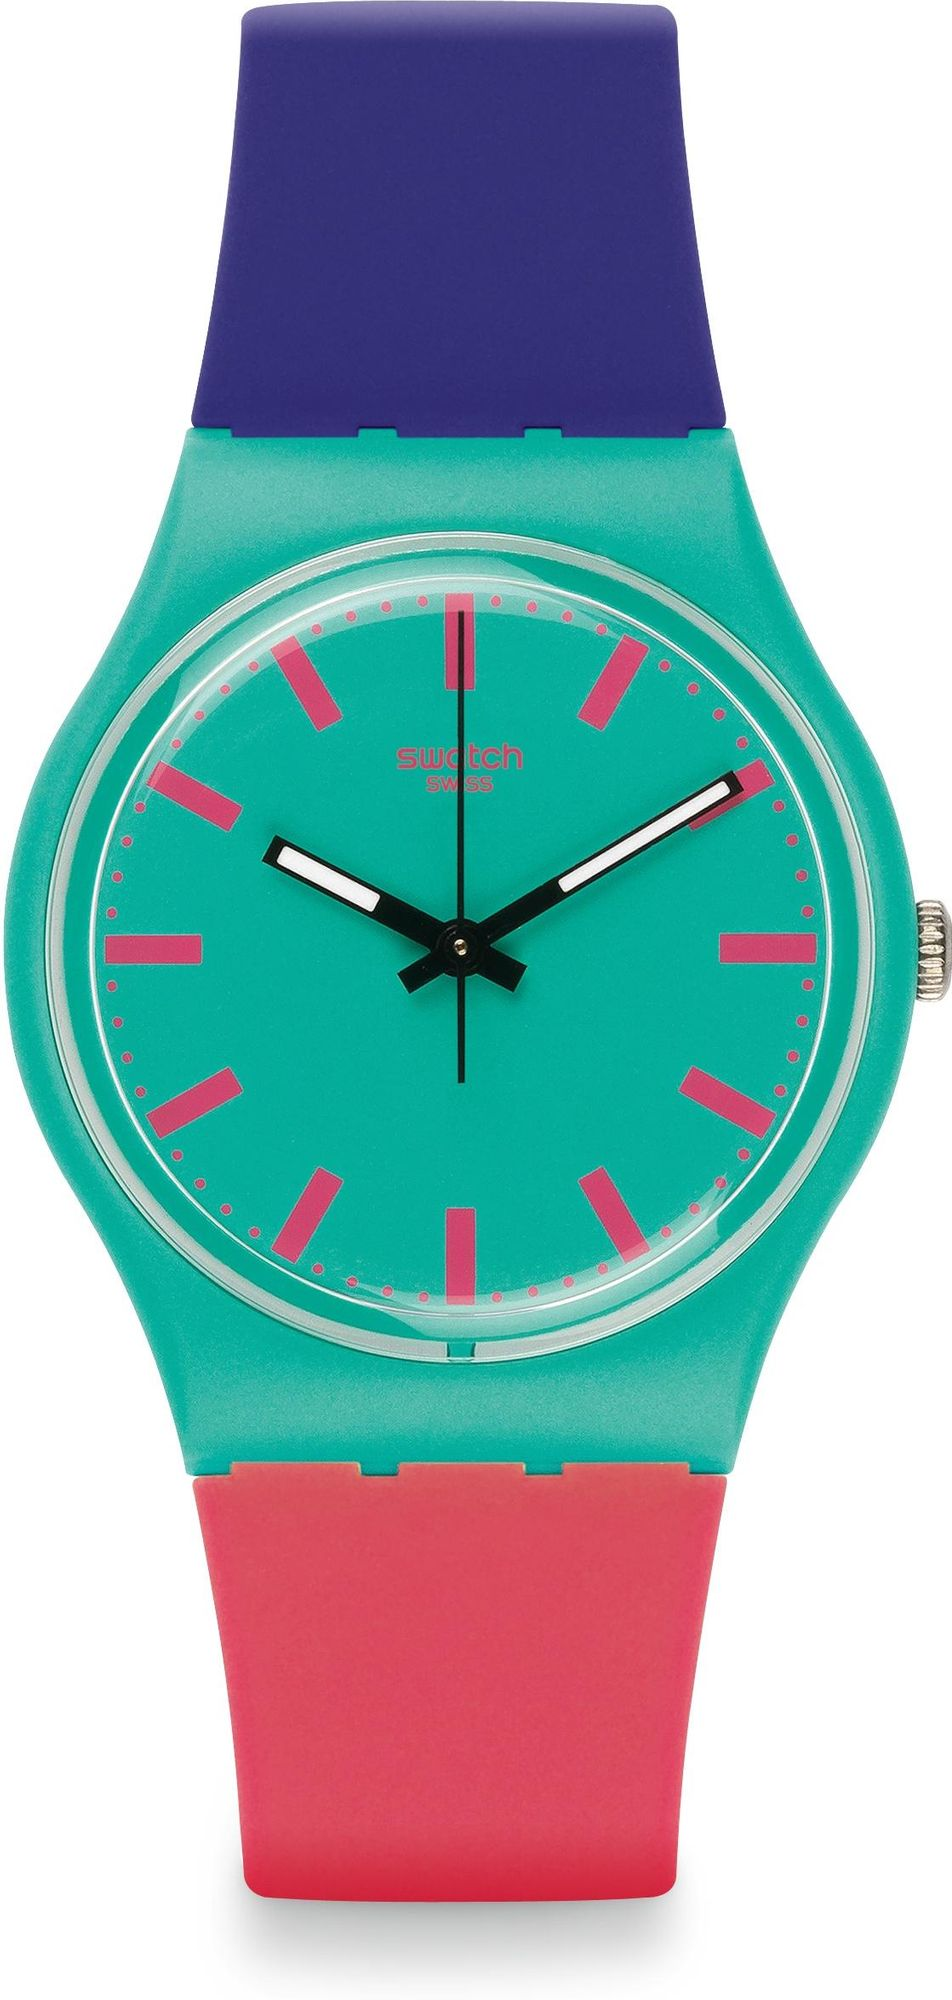 Swatch Shunbukin Gg215 Unisexuhr Highlight Design BCoQdxWre